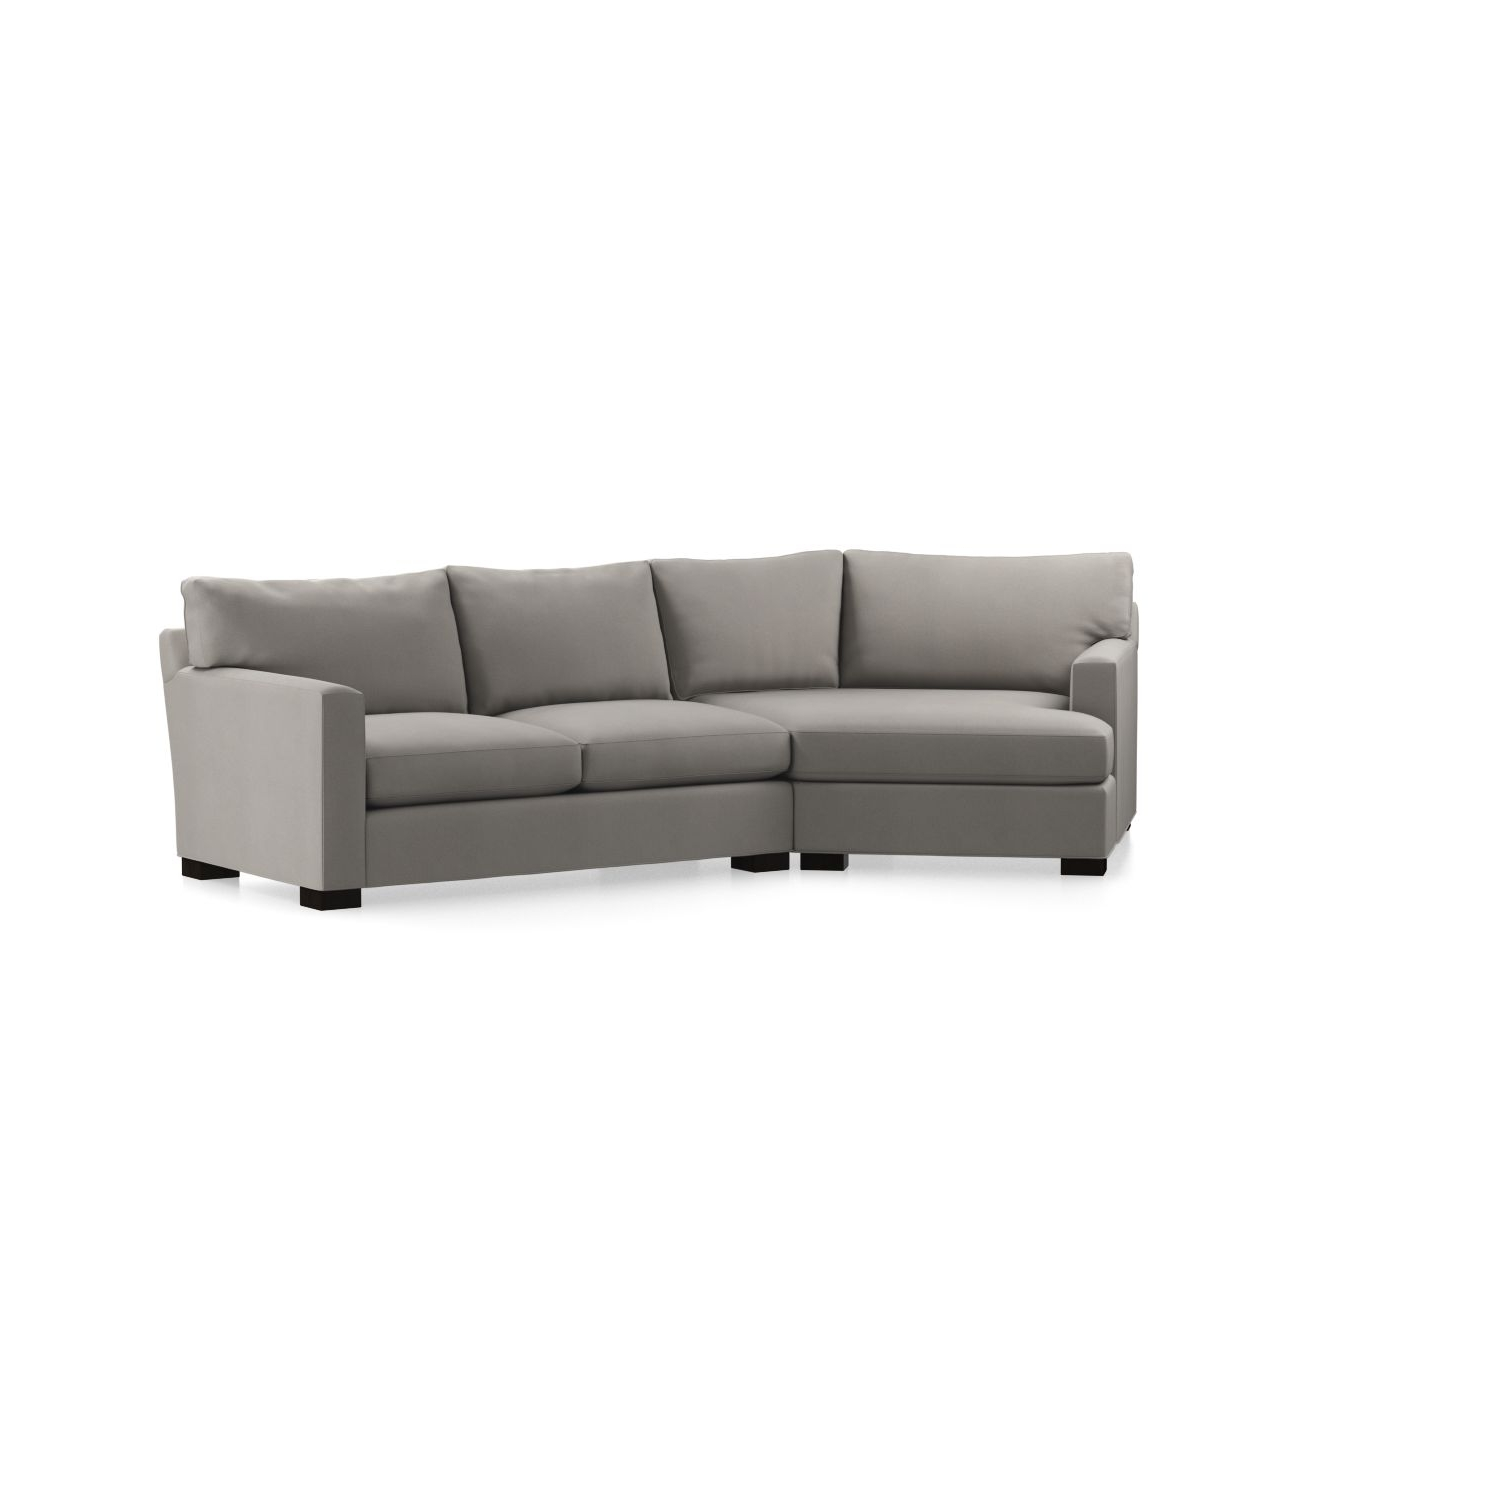 Axis Ii 2 Piece Left Arm Angled Chaise Sectional Sofa In Axis Pertaining To Well Known Angled Chaise Sofas (View 10 of 15)